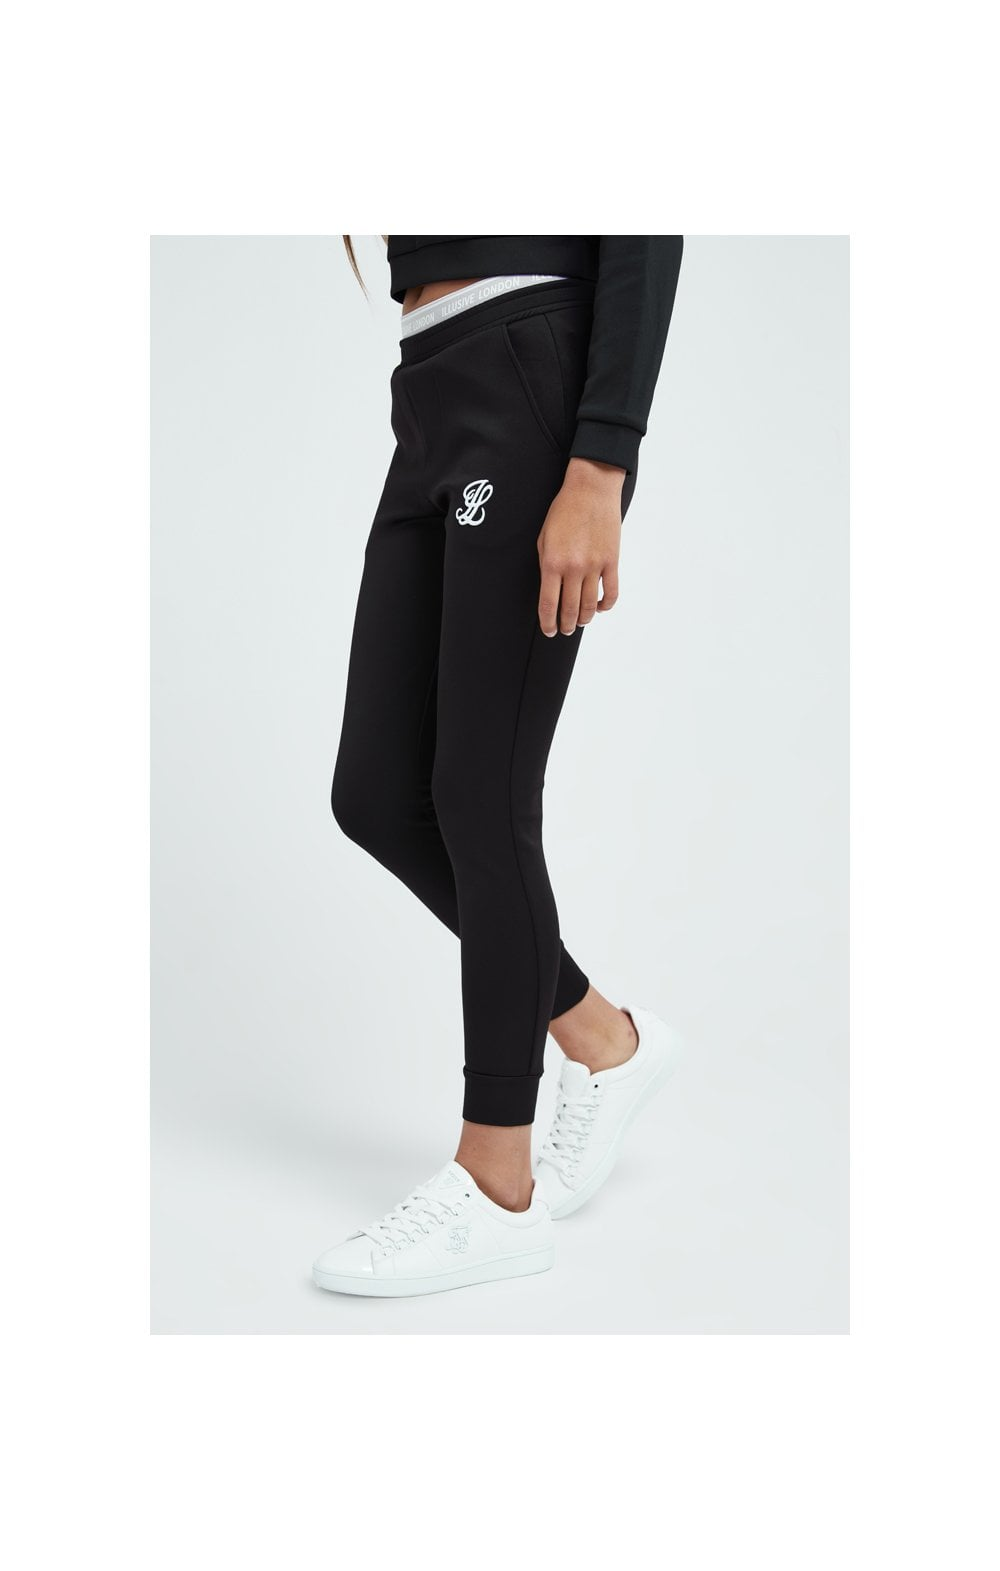 Load image into Gallery viewer, Illusive London Tape Track Pants - Black (1)